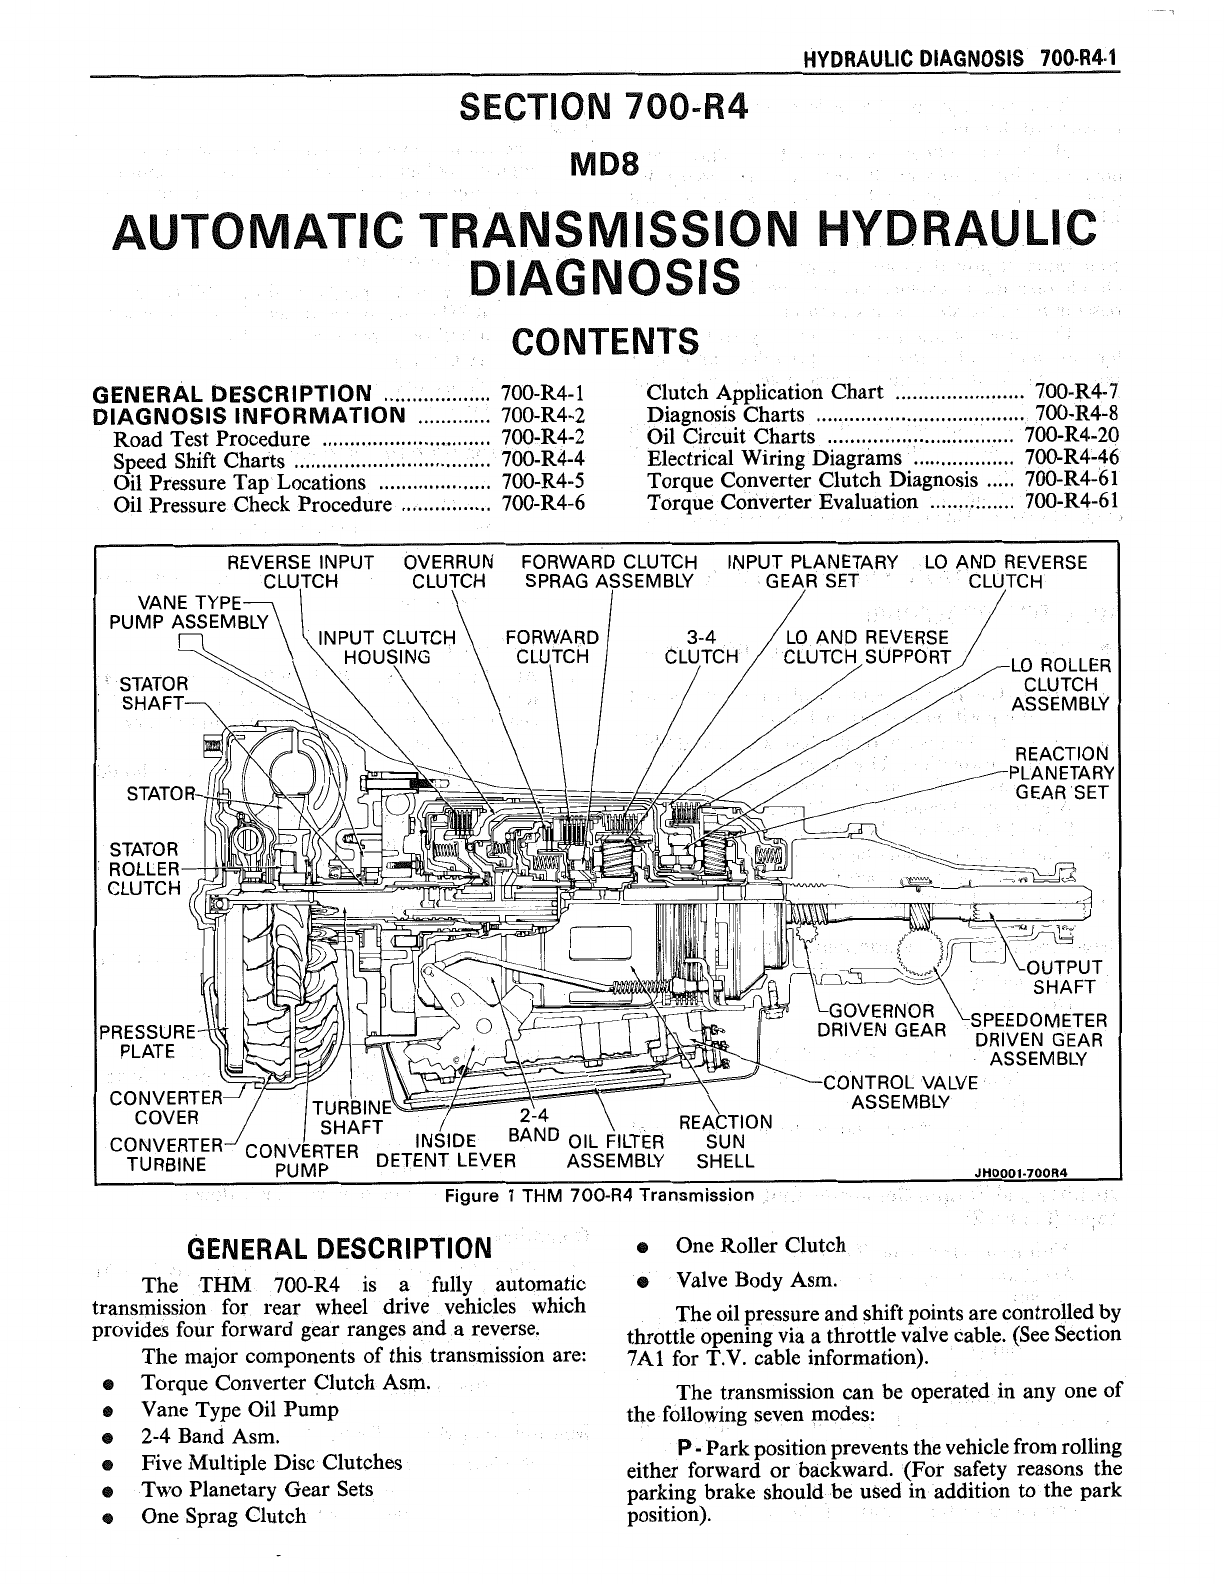 Pontiac Firebird 1988 Service Manual Pdf Torque 8 Wire Diagram